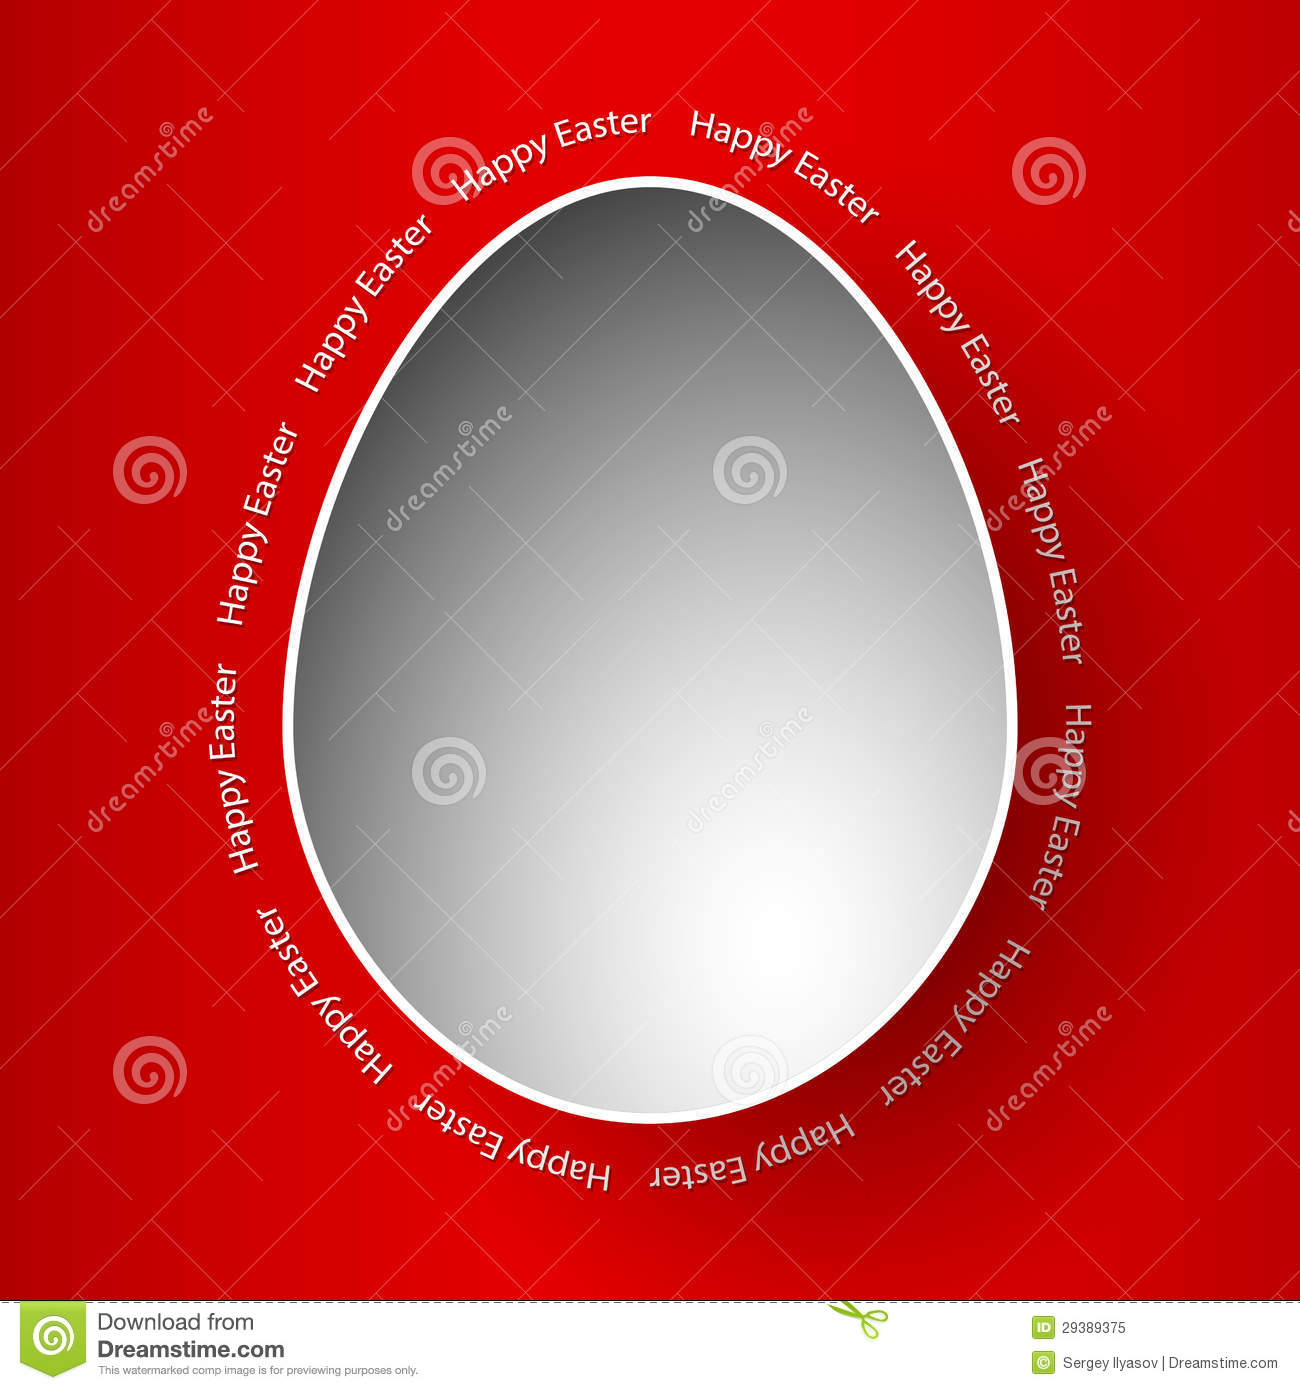 Template Greeting Card Royalty Free Stock Image: Happy Easter Greeting Card Red Template Royalty Free Stock